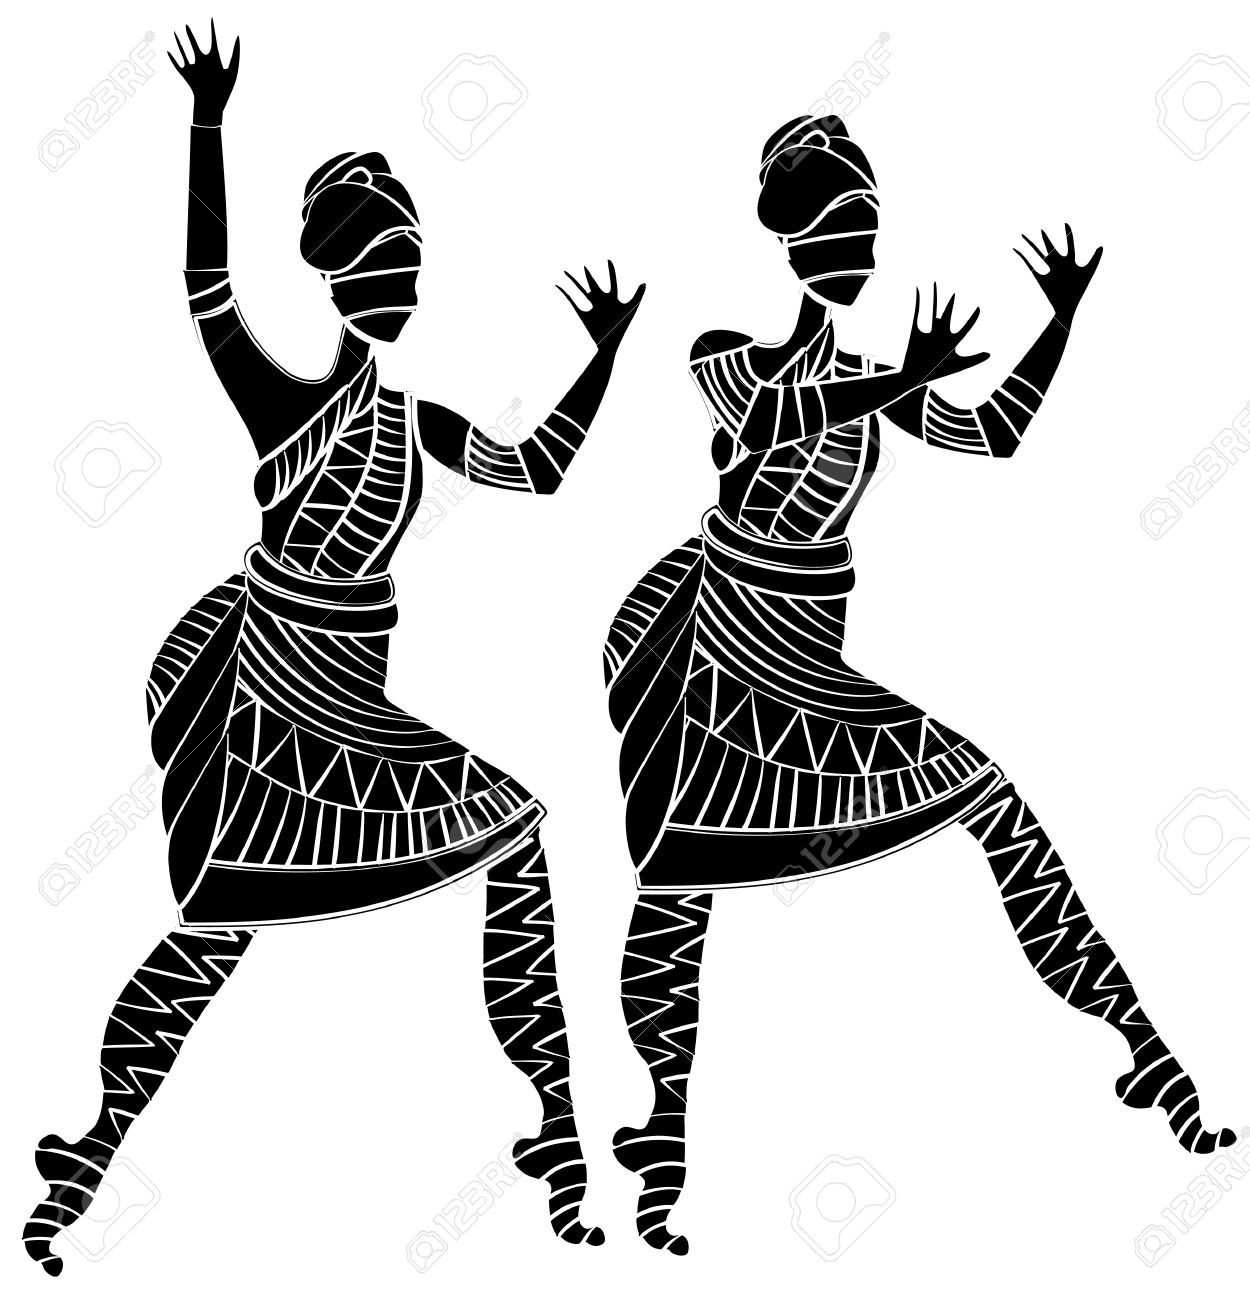 Traditional dance clipart image royalty free African dance on emaze image royalty free